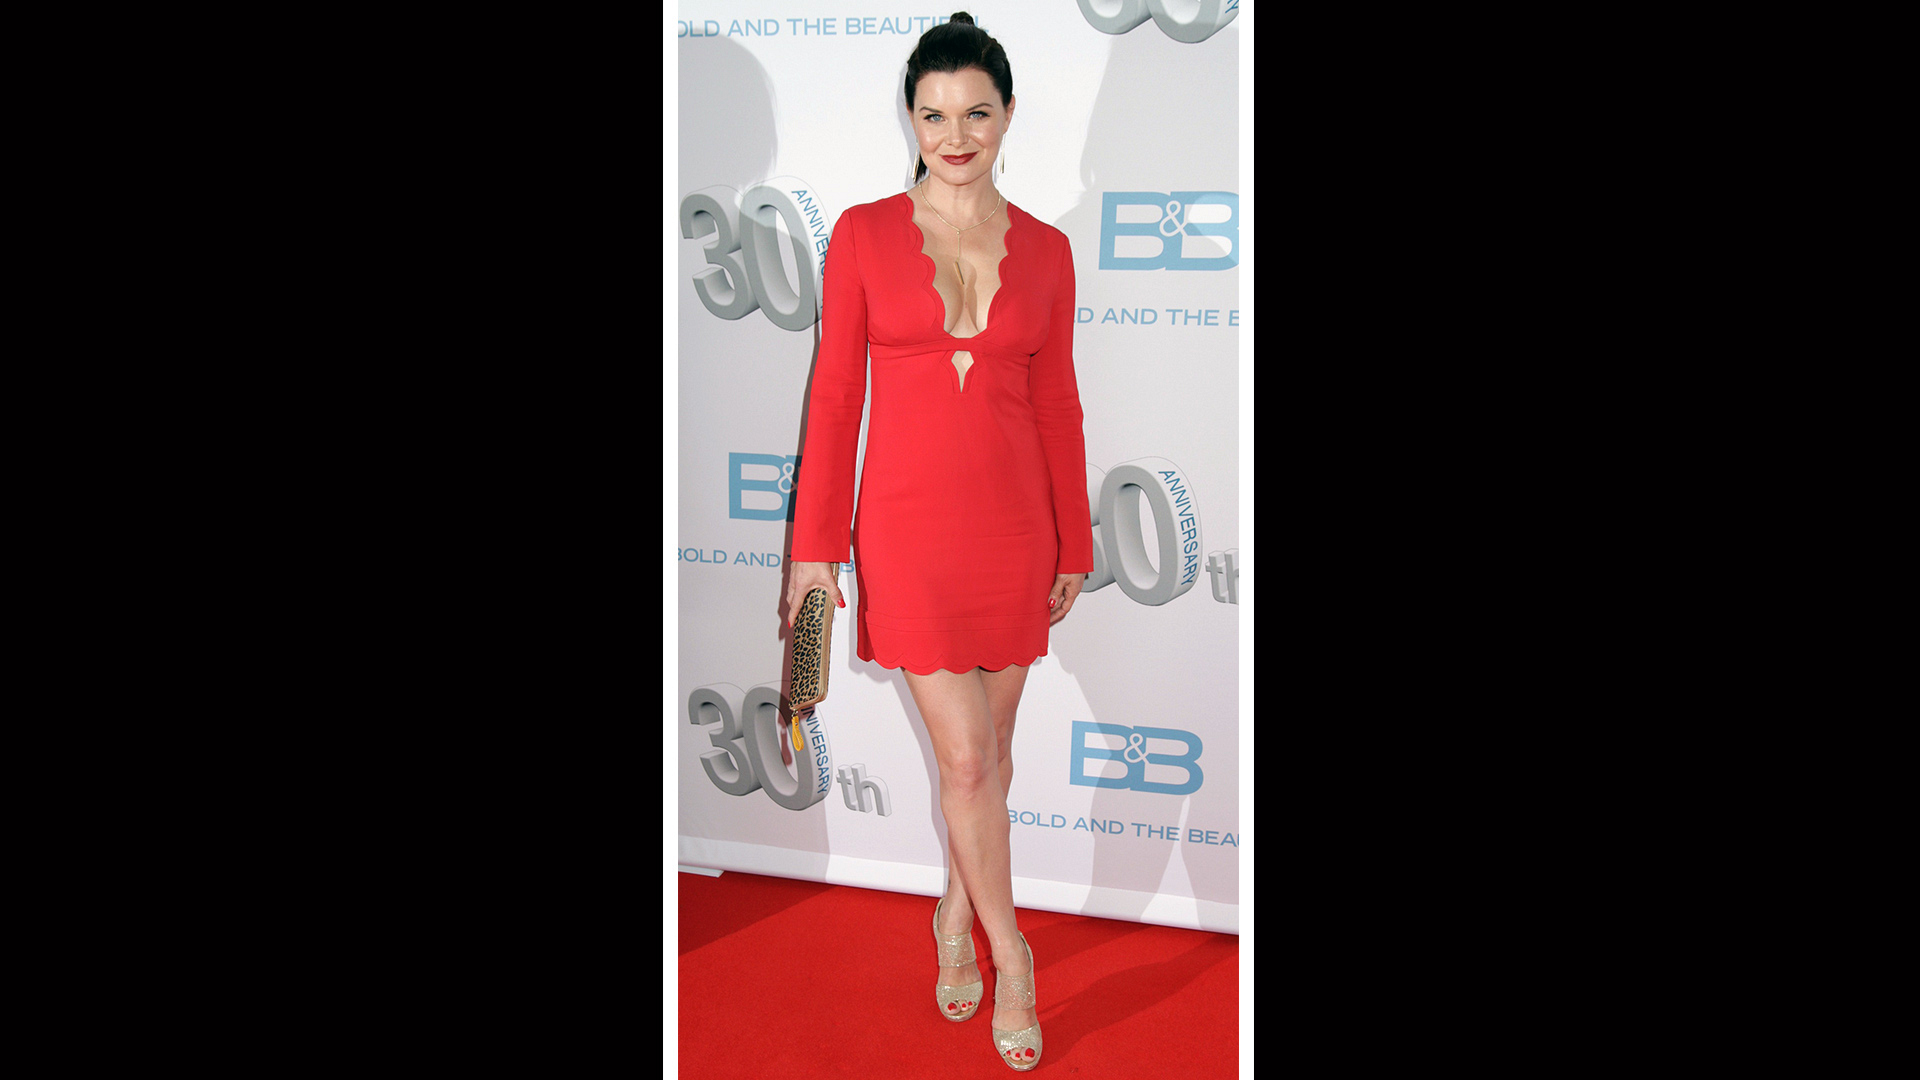 Heather Tom embraces spring in a bright red dress with a scalloped neckline.